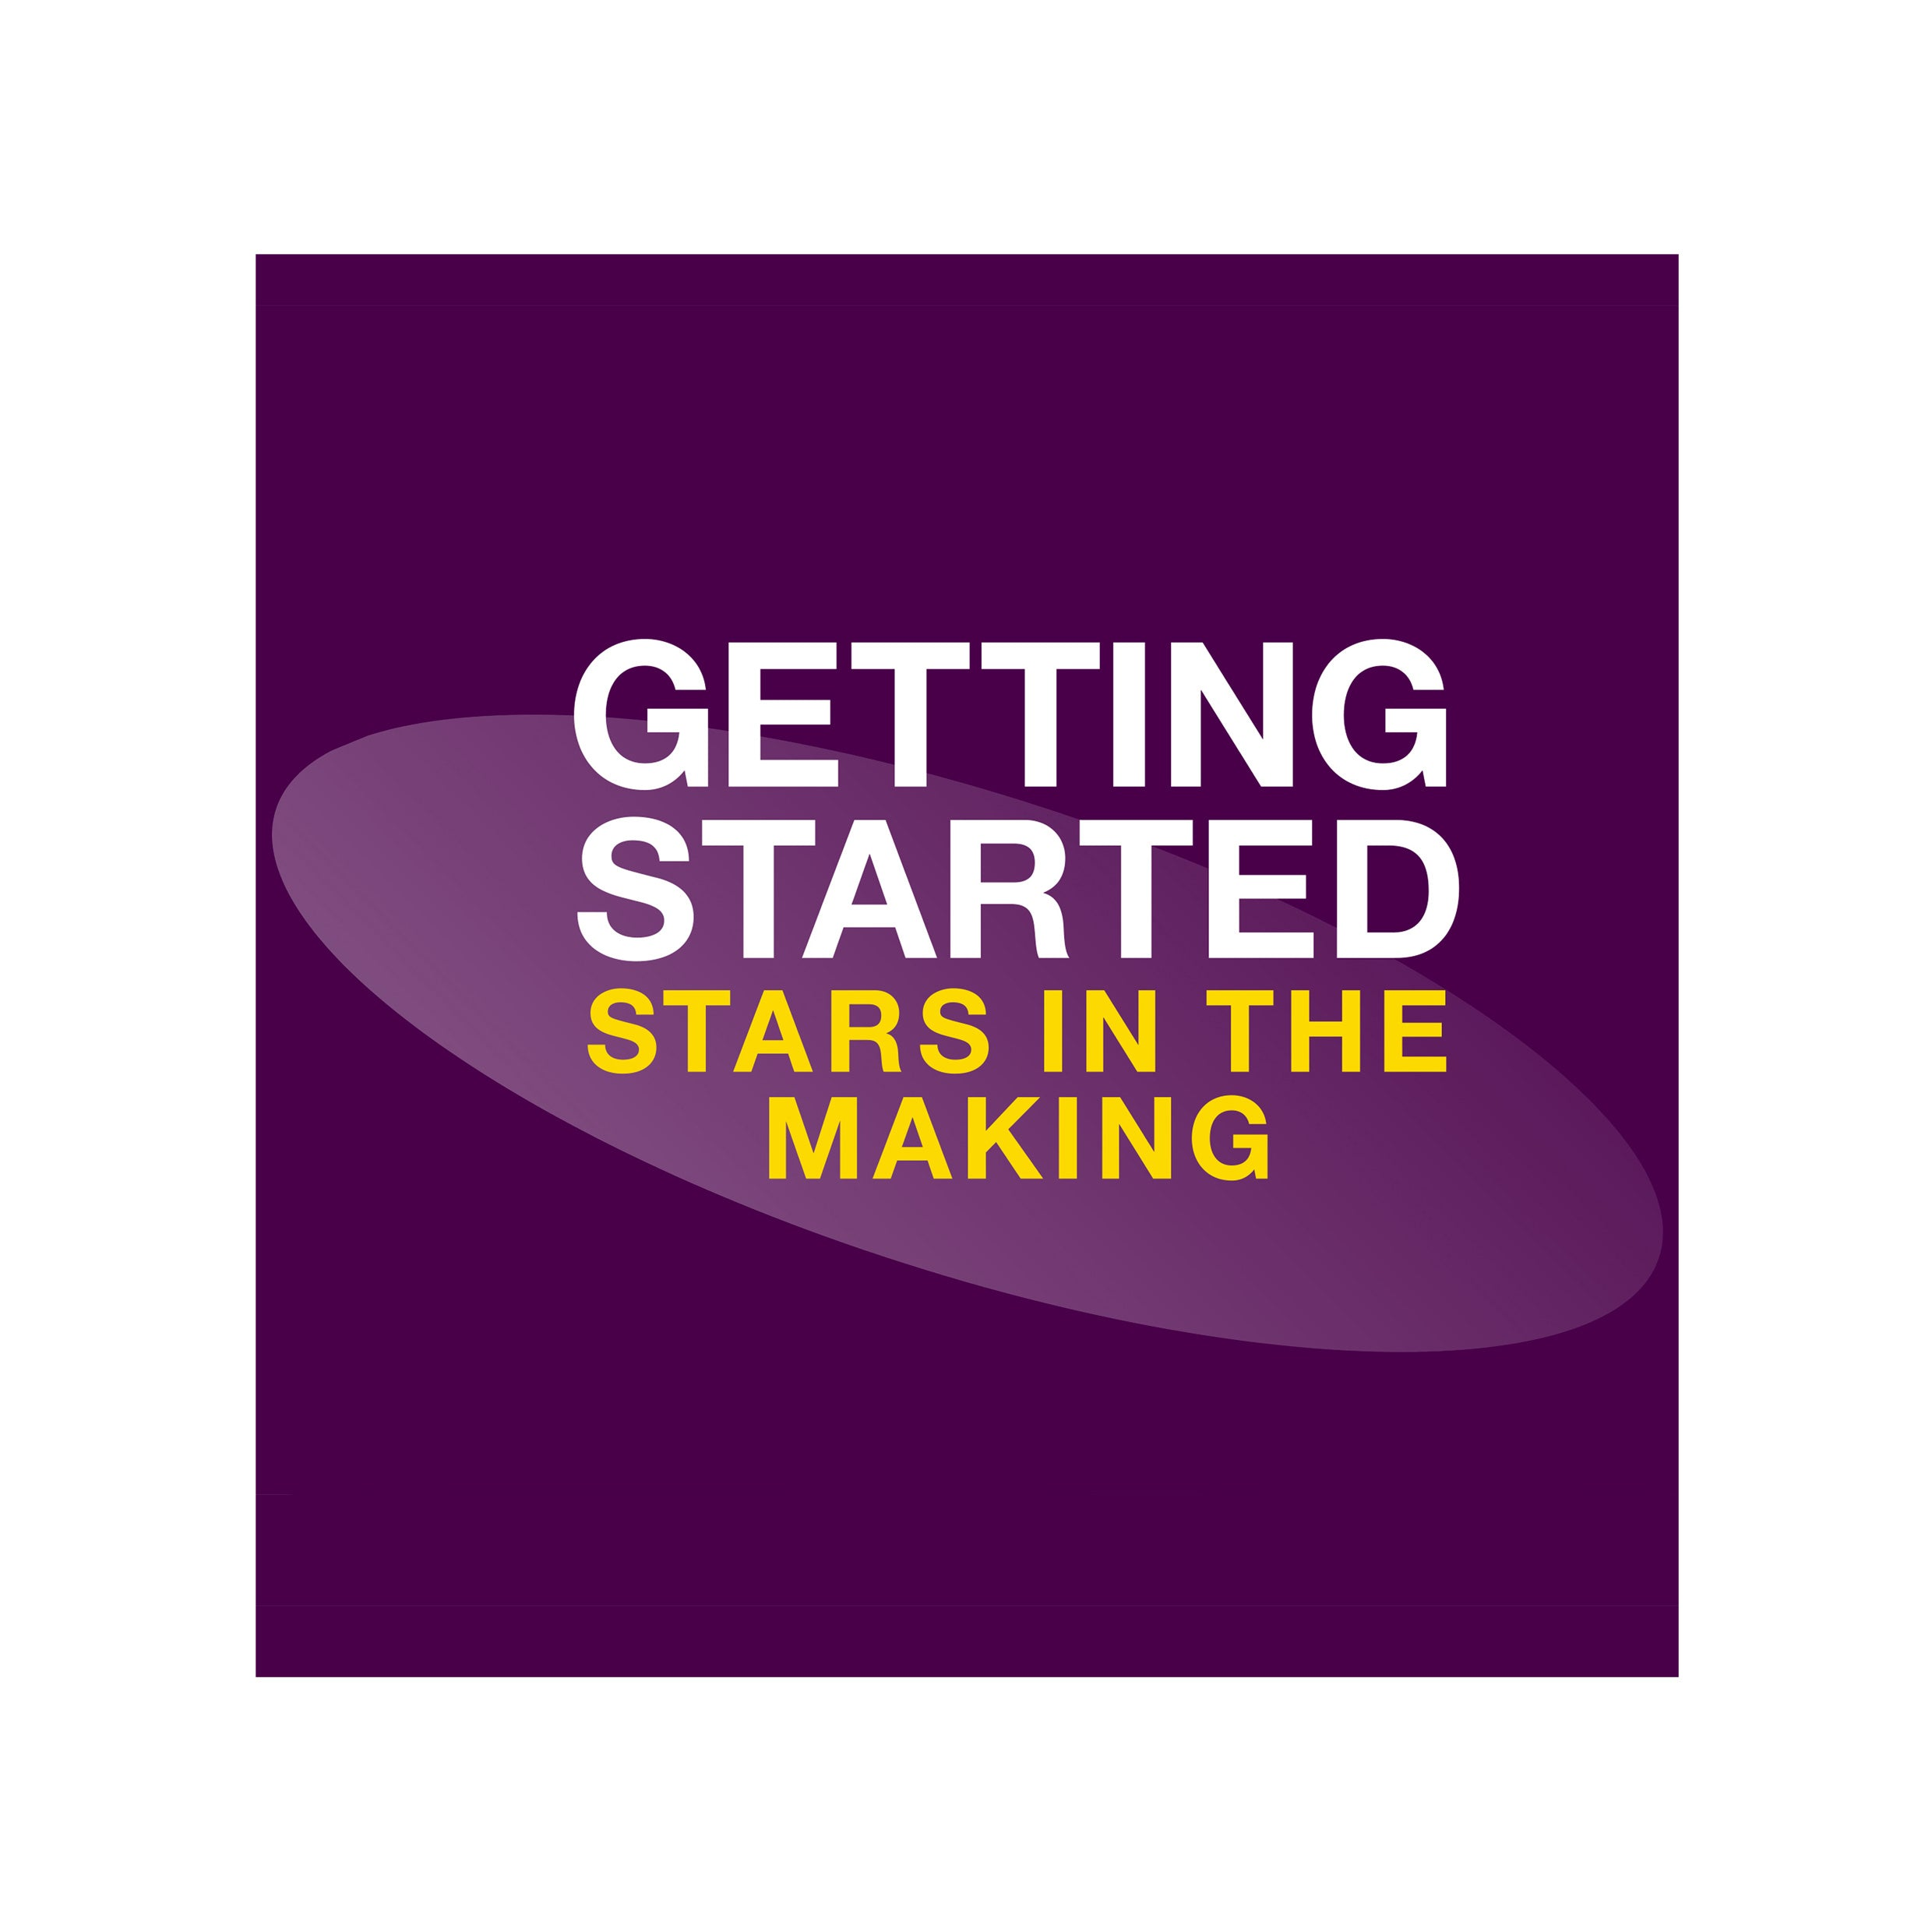 Getting Started: Stars in the Making